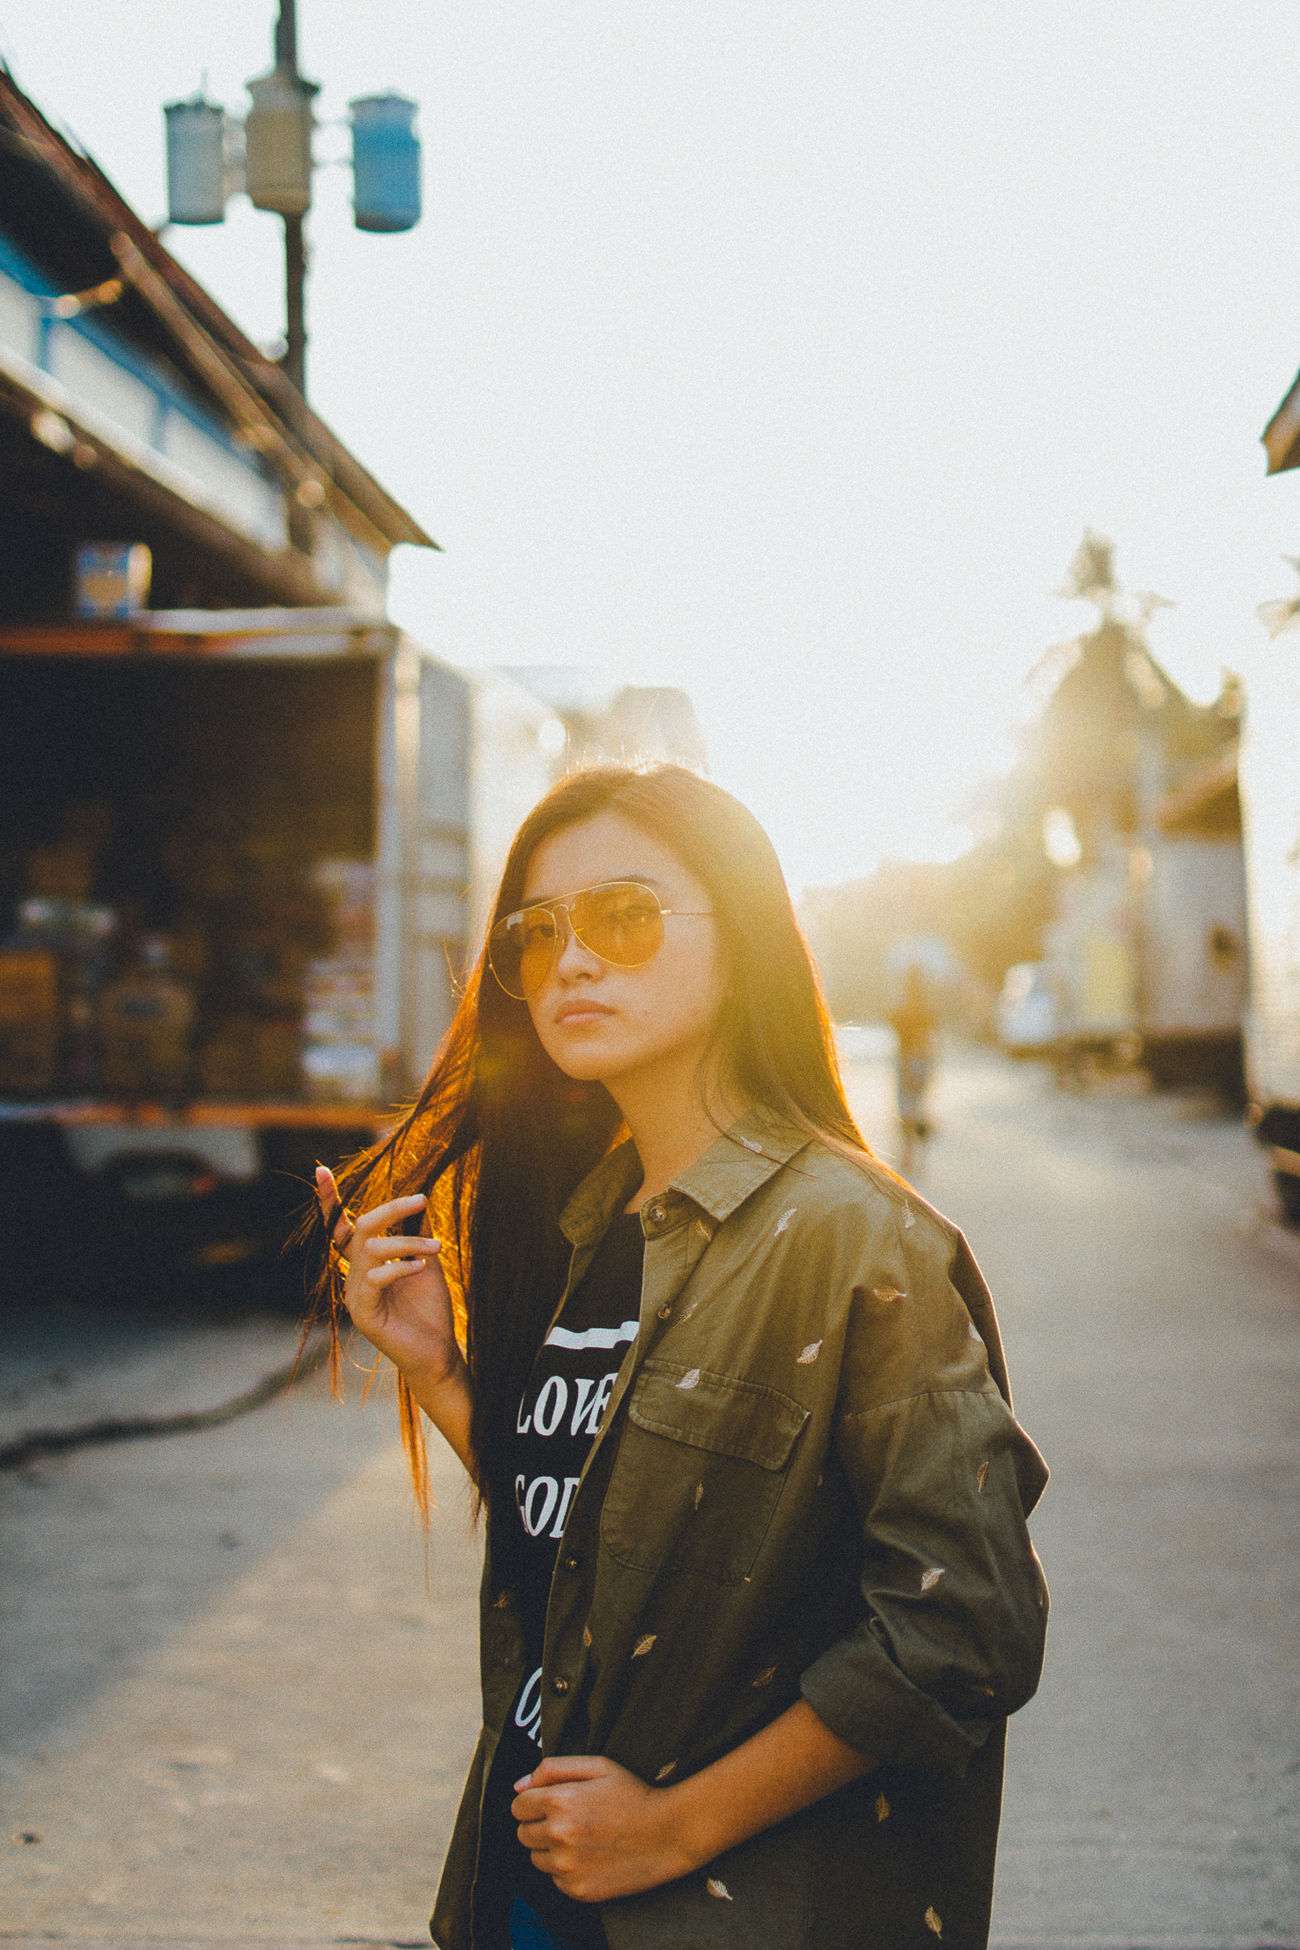 EyeEm Best Edits EyeEm Best Shots Eyeem Philippines Golden Hour Long Hair Outdoors Portrait Real People Street Sunlight Sunset Woman Woman Portrait Women The Portraitist - 2017 EyeEm Awards